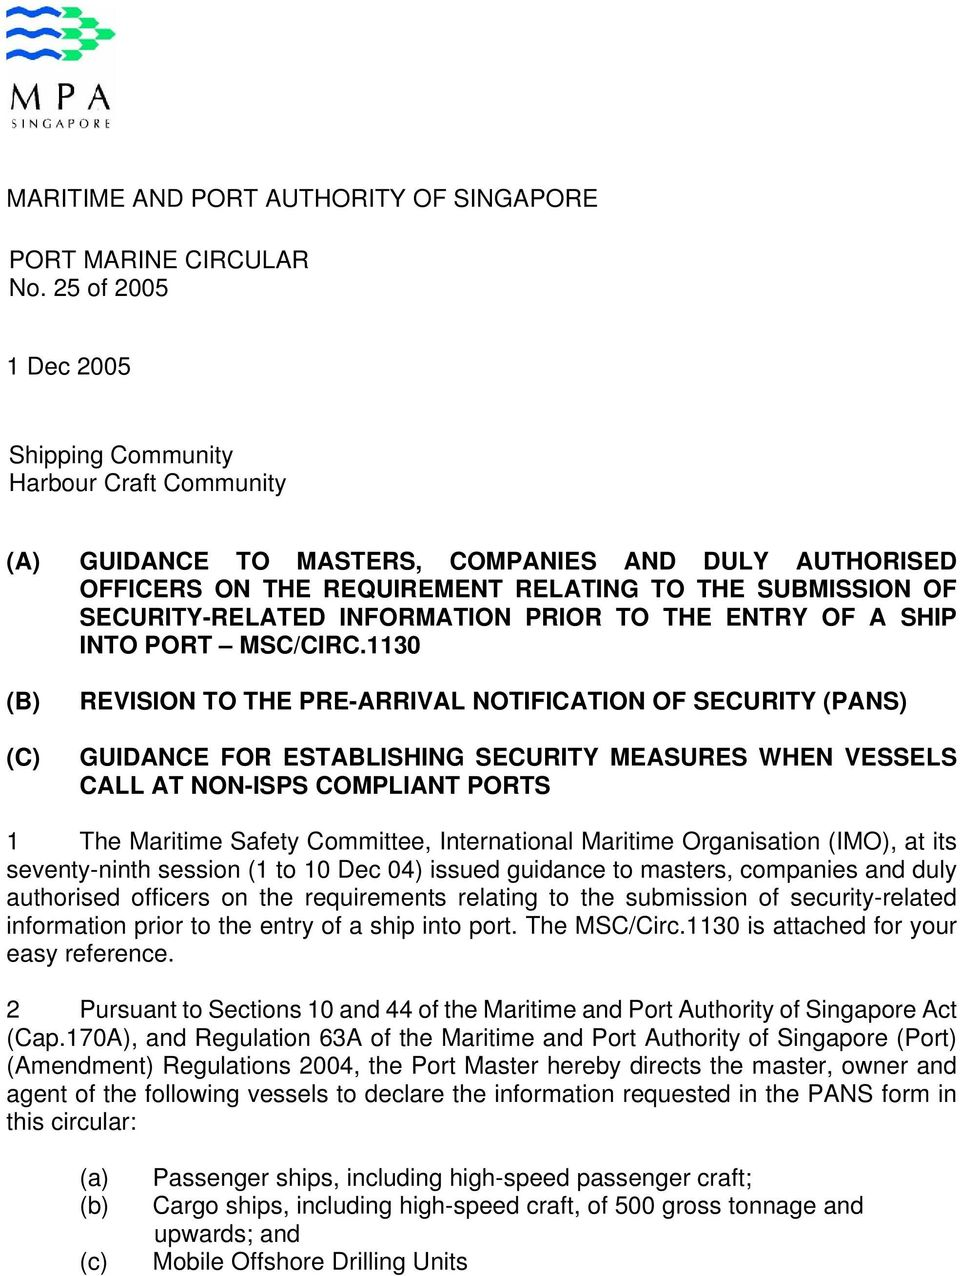 INFORMATION PRIOR TO THE ENTRY OF A SHIP INTO PORT MSC/CIRC.